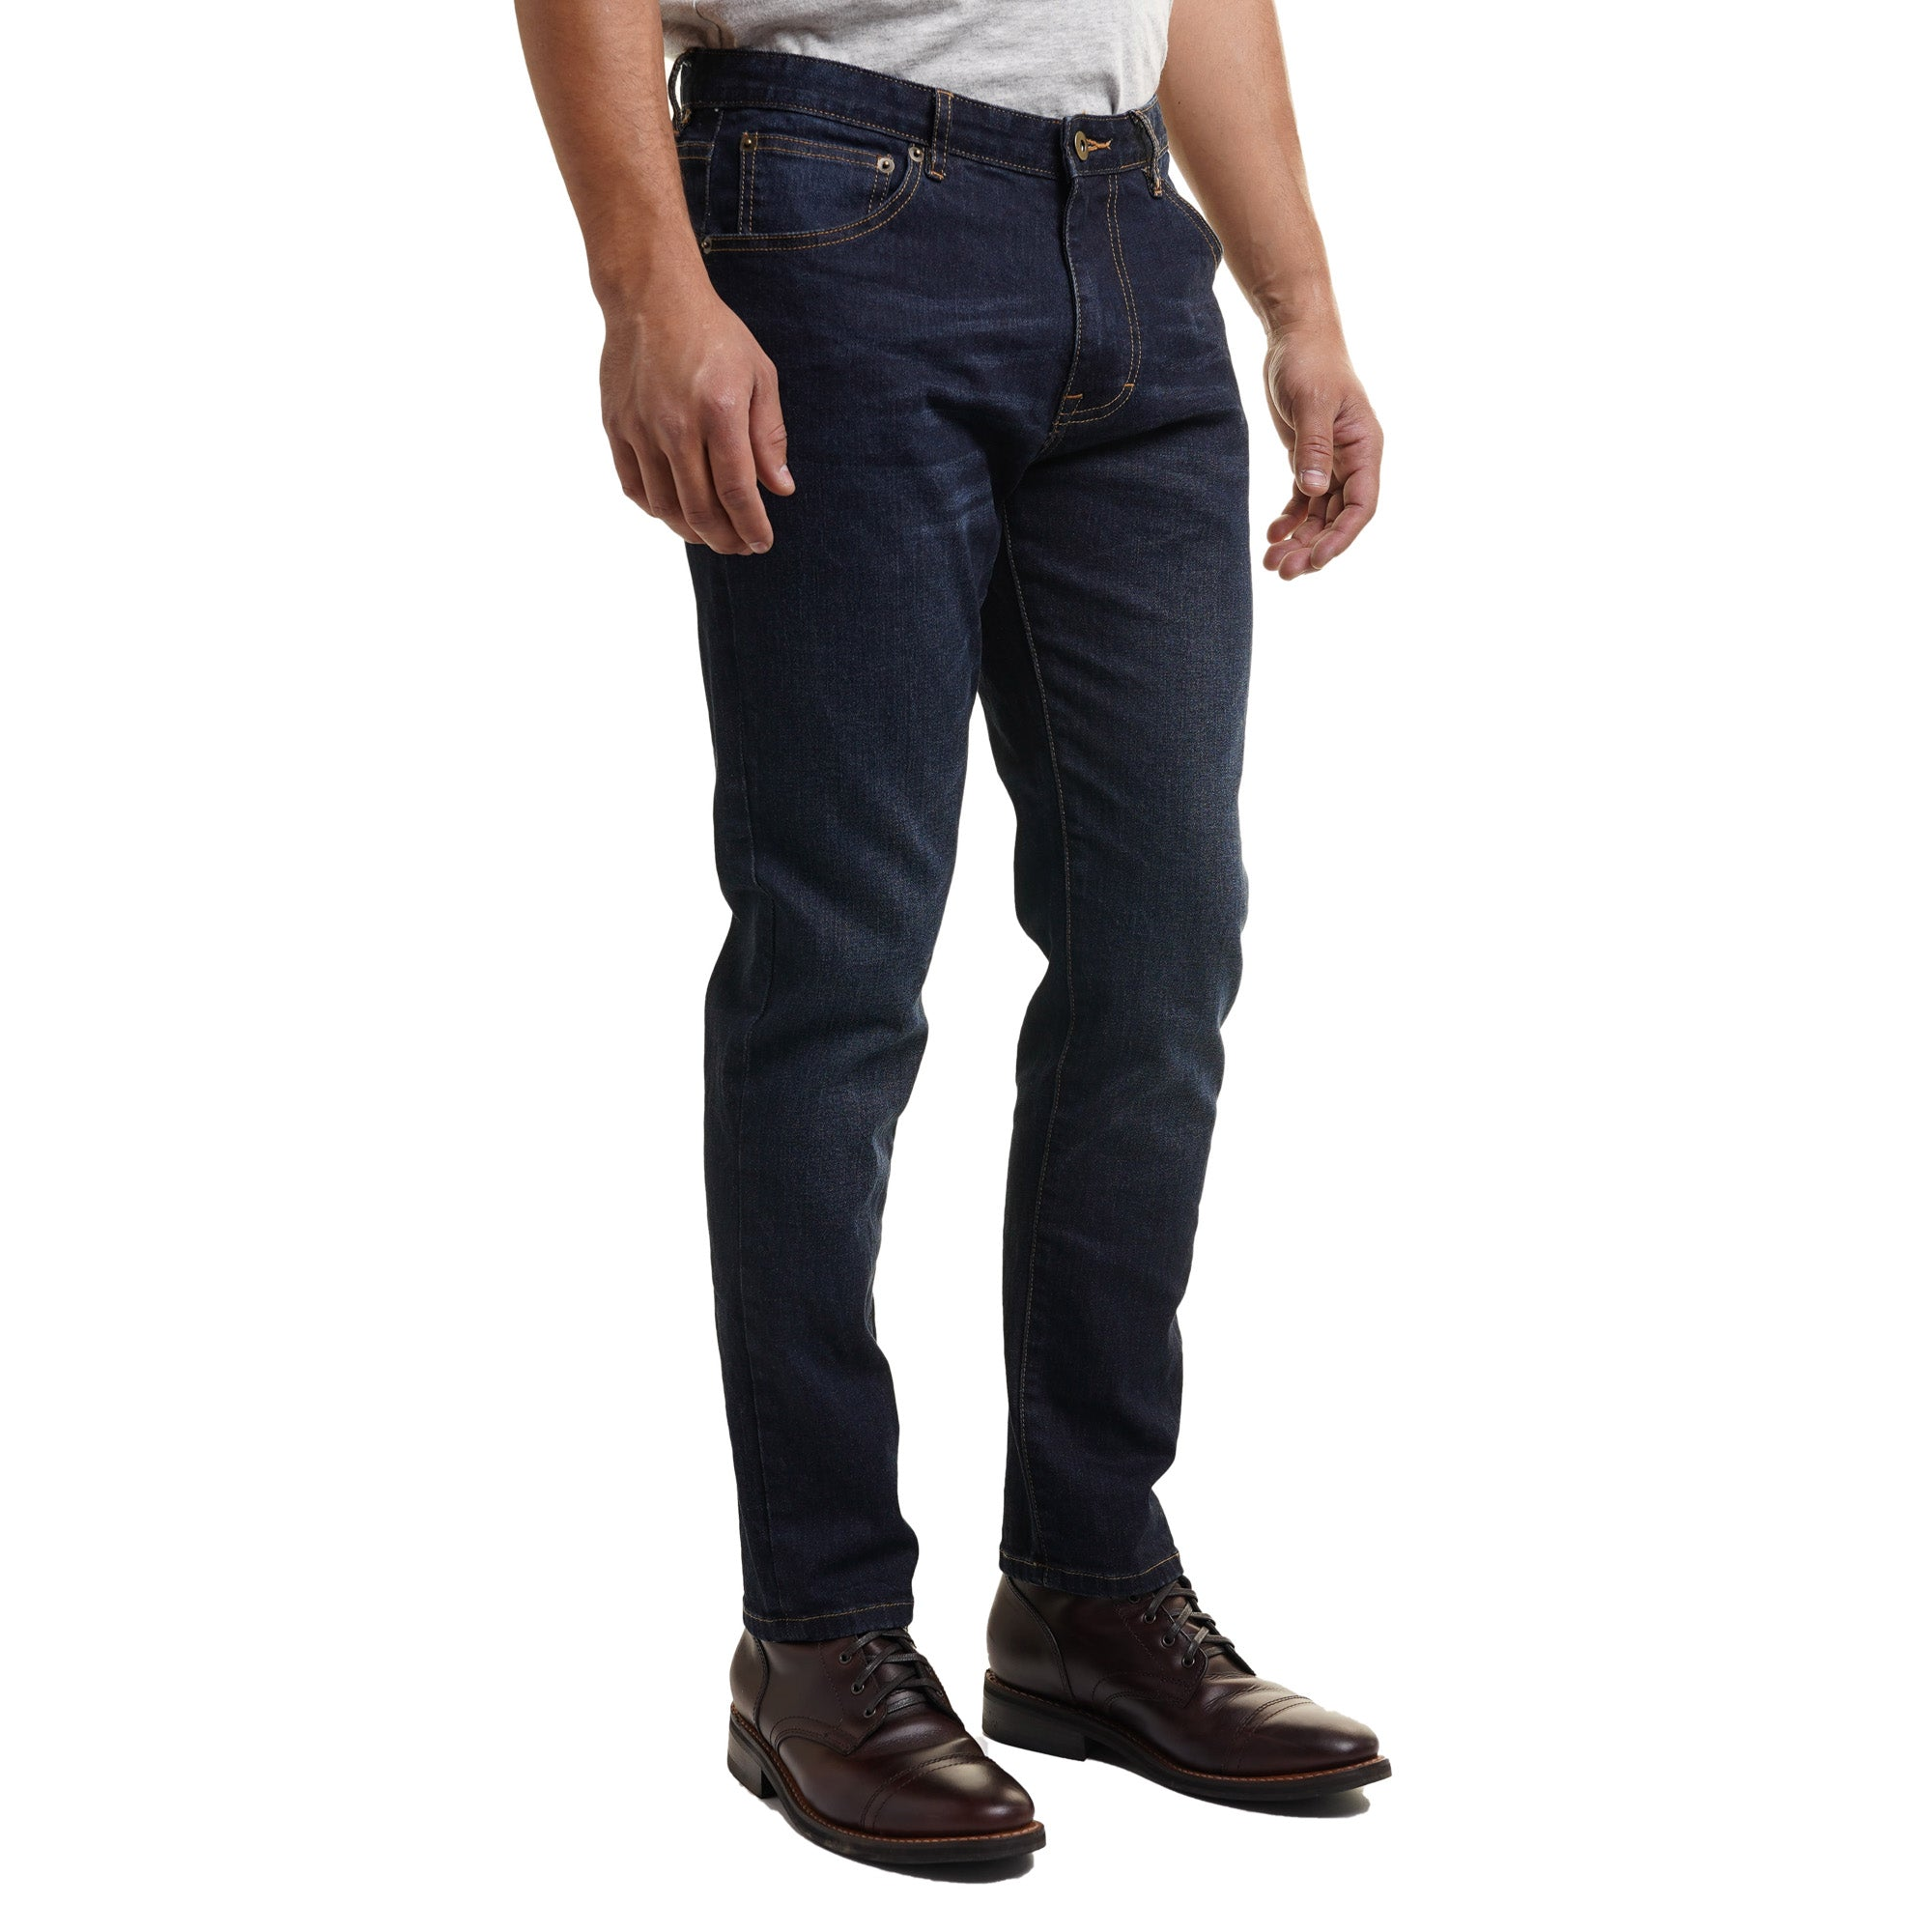 Johnny Stretch Jeans Slim Fit - Dark Rinse